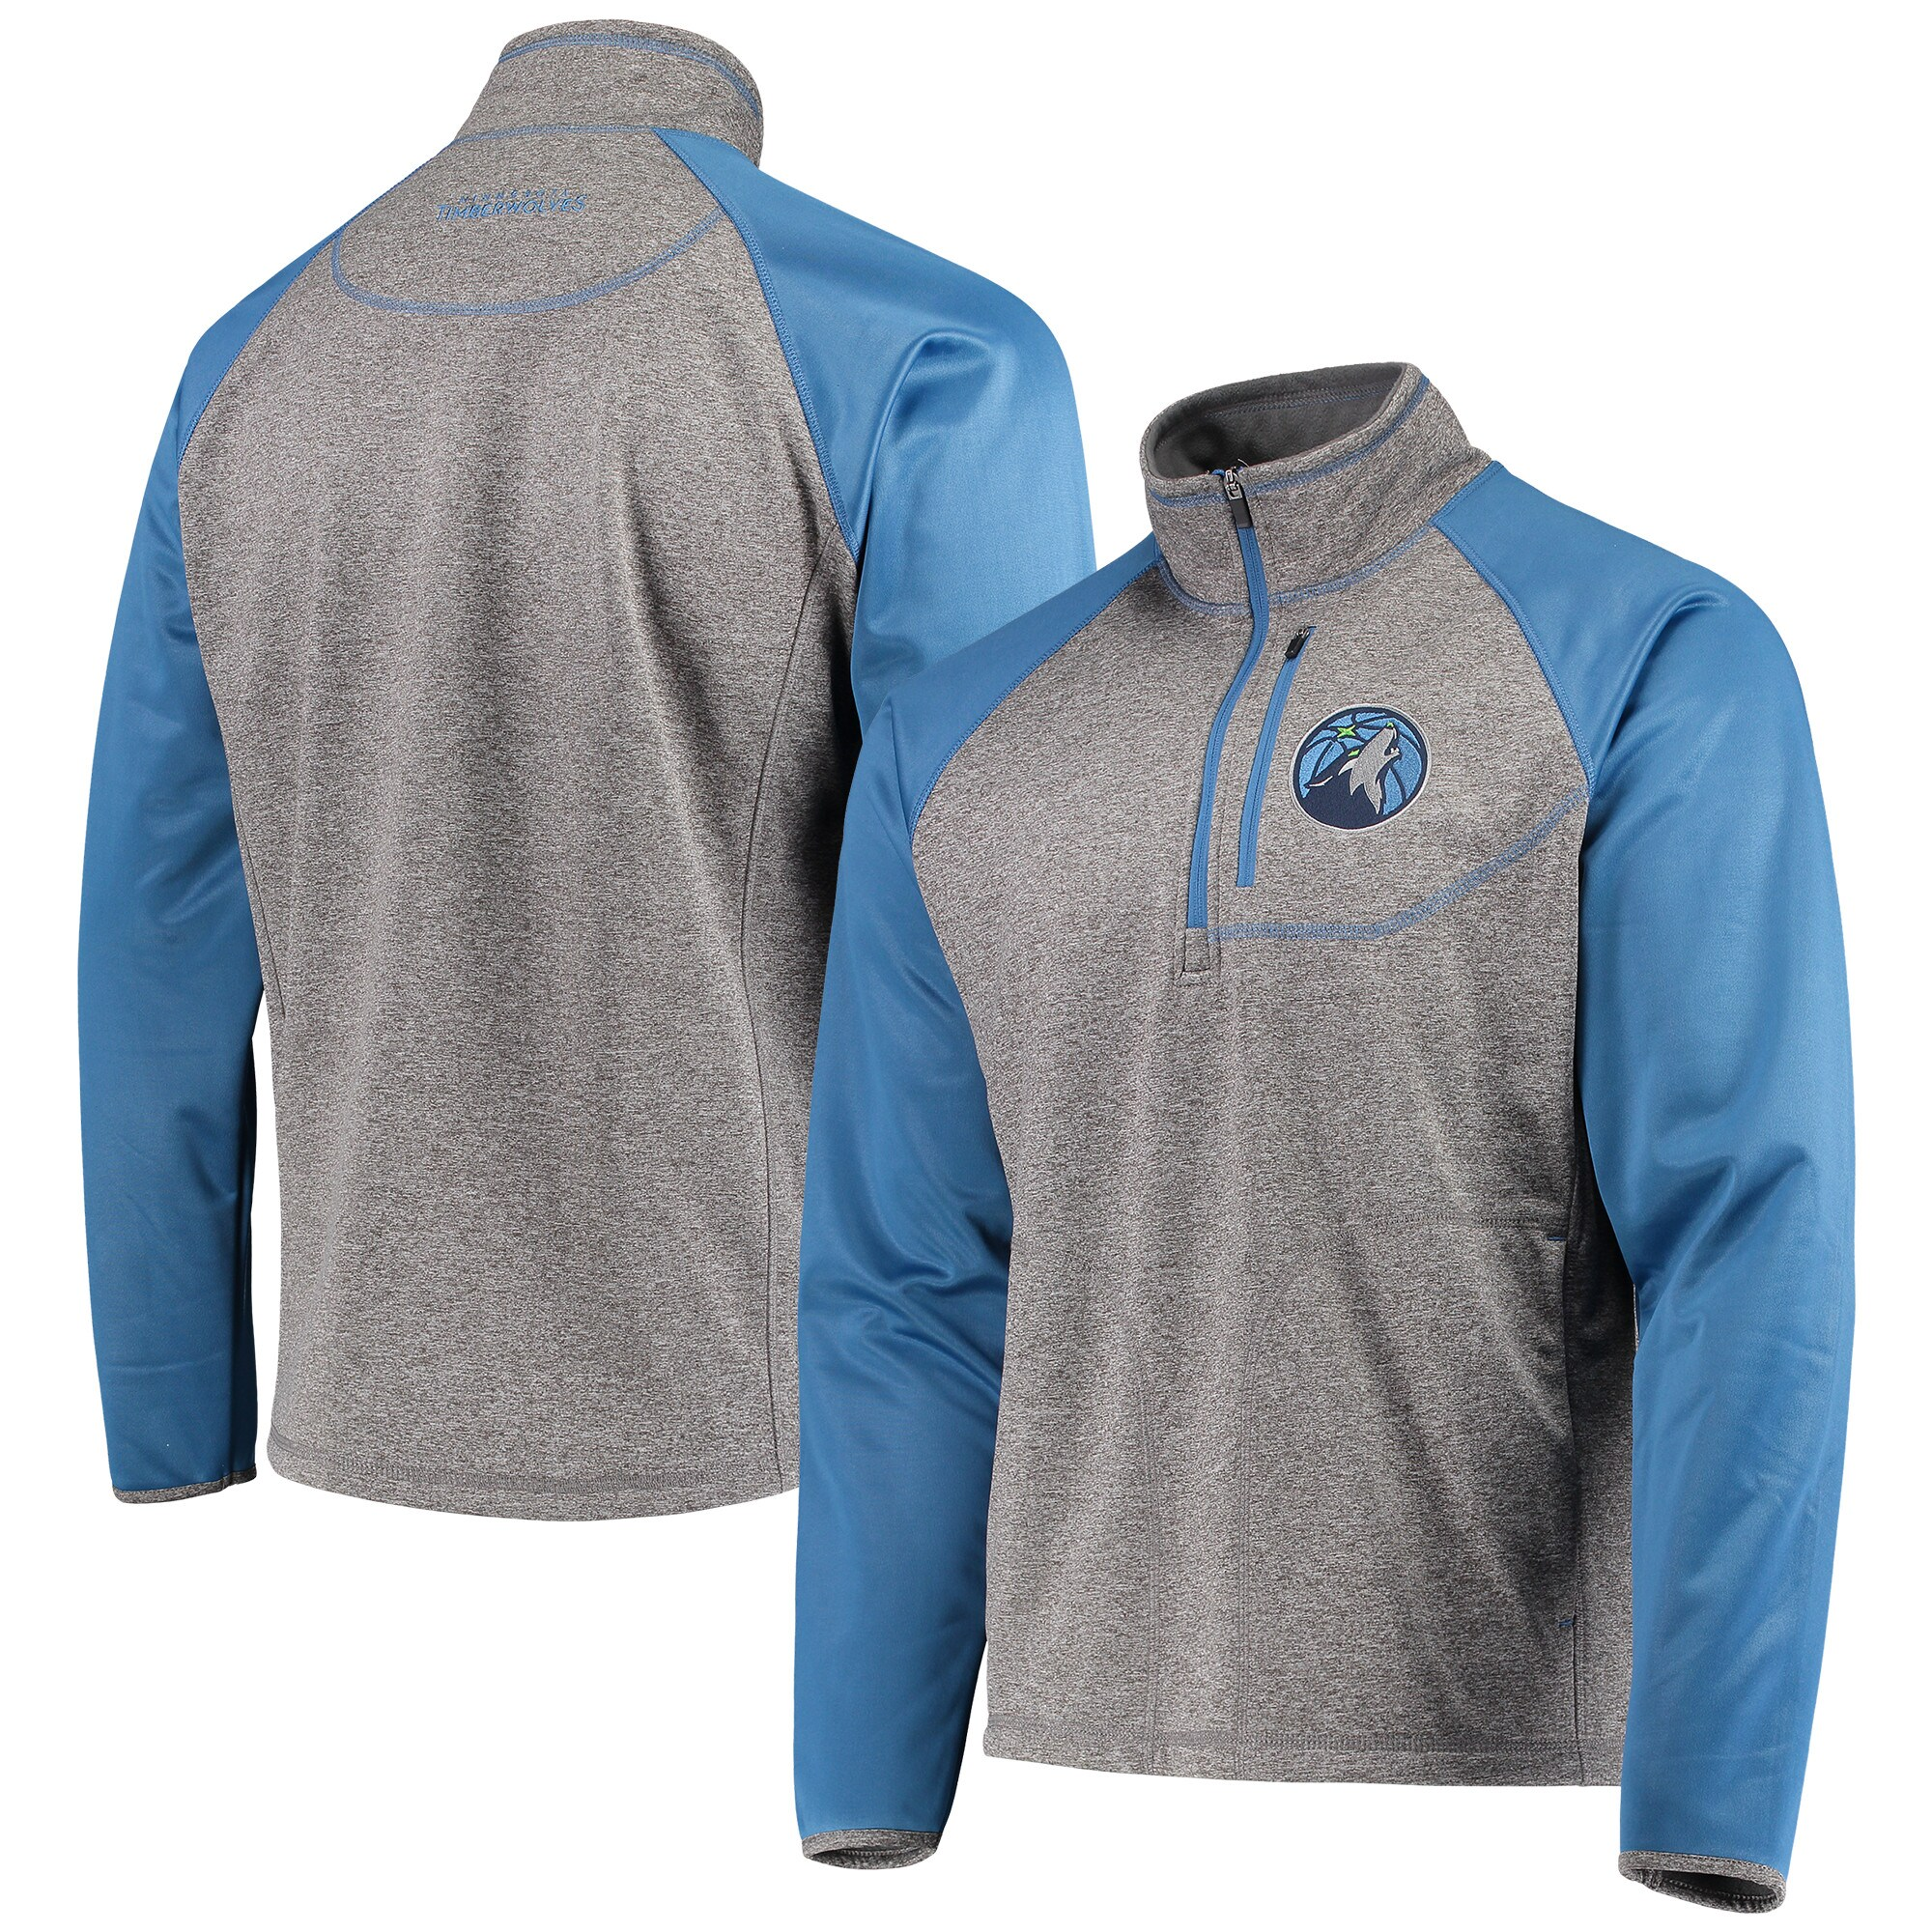 Minnesota Timberwolves G-III Sports by Carl Banks Mountain Trail Half-Zip Pullover Jacket - Gray/Blue